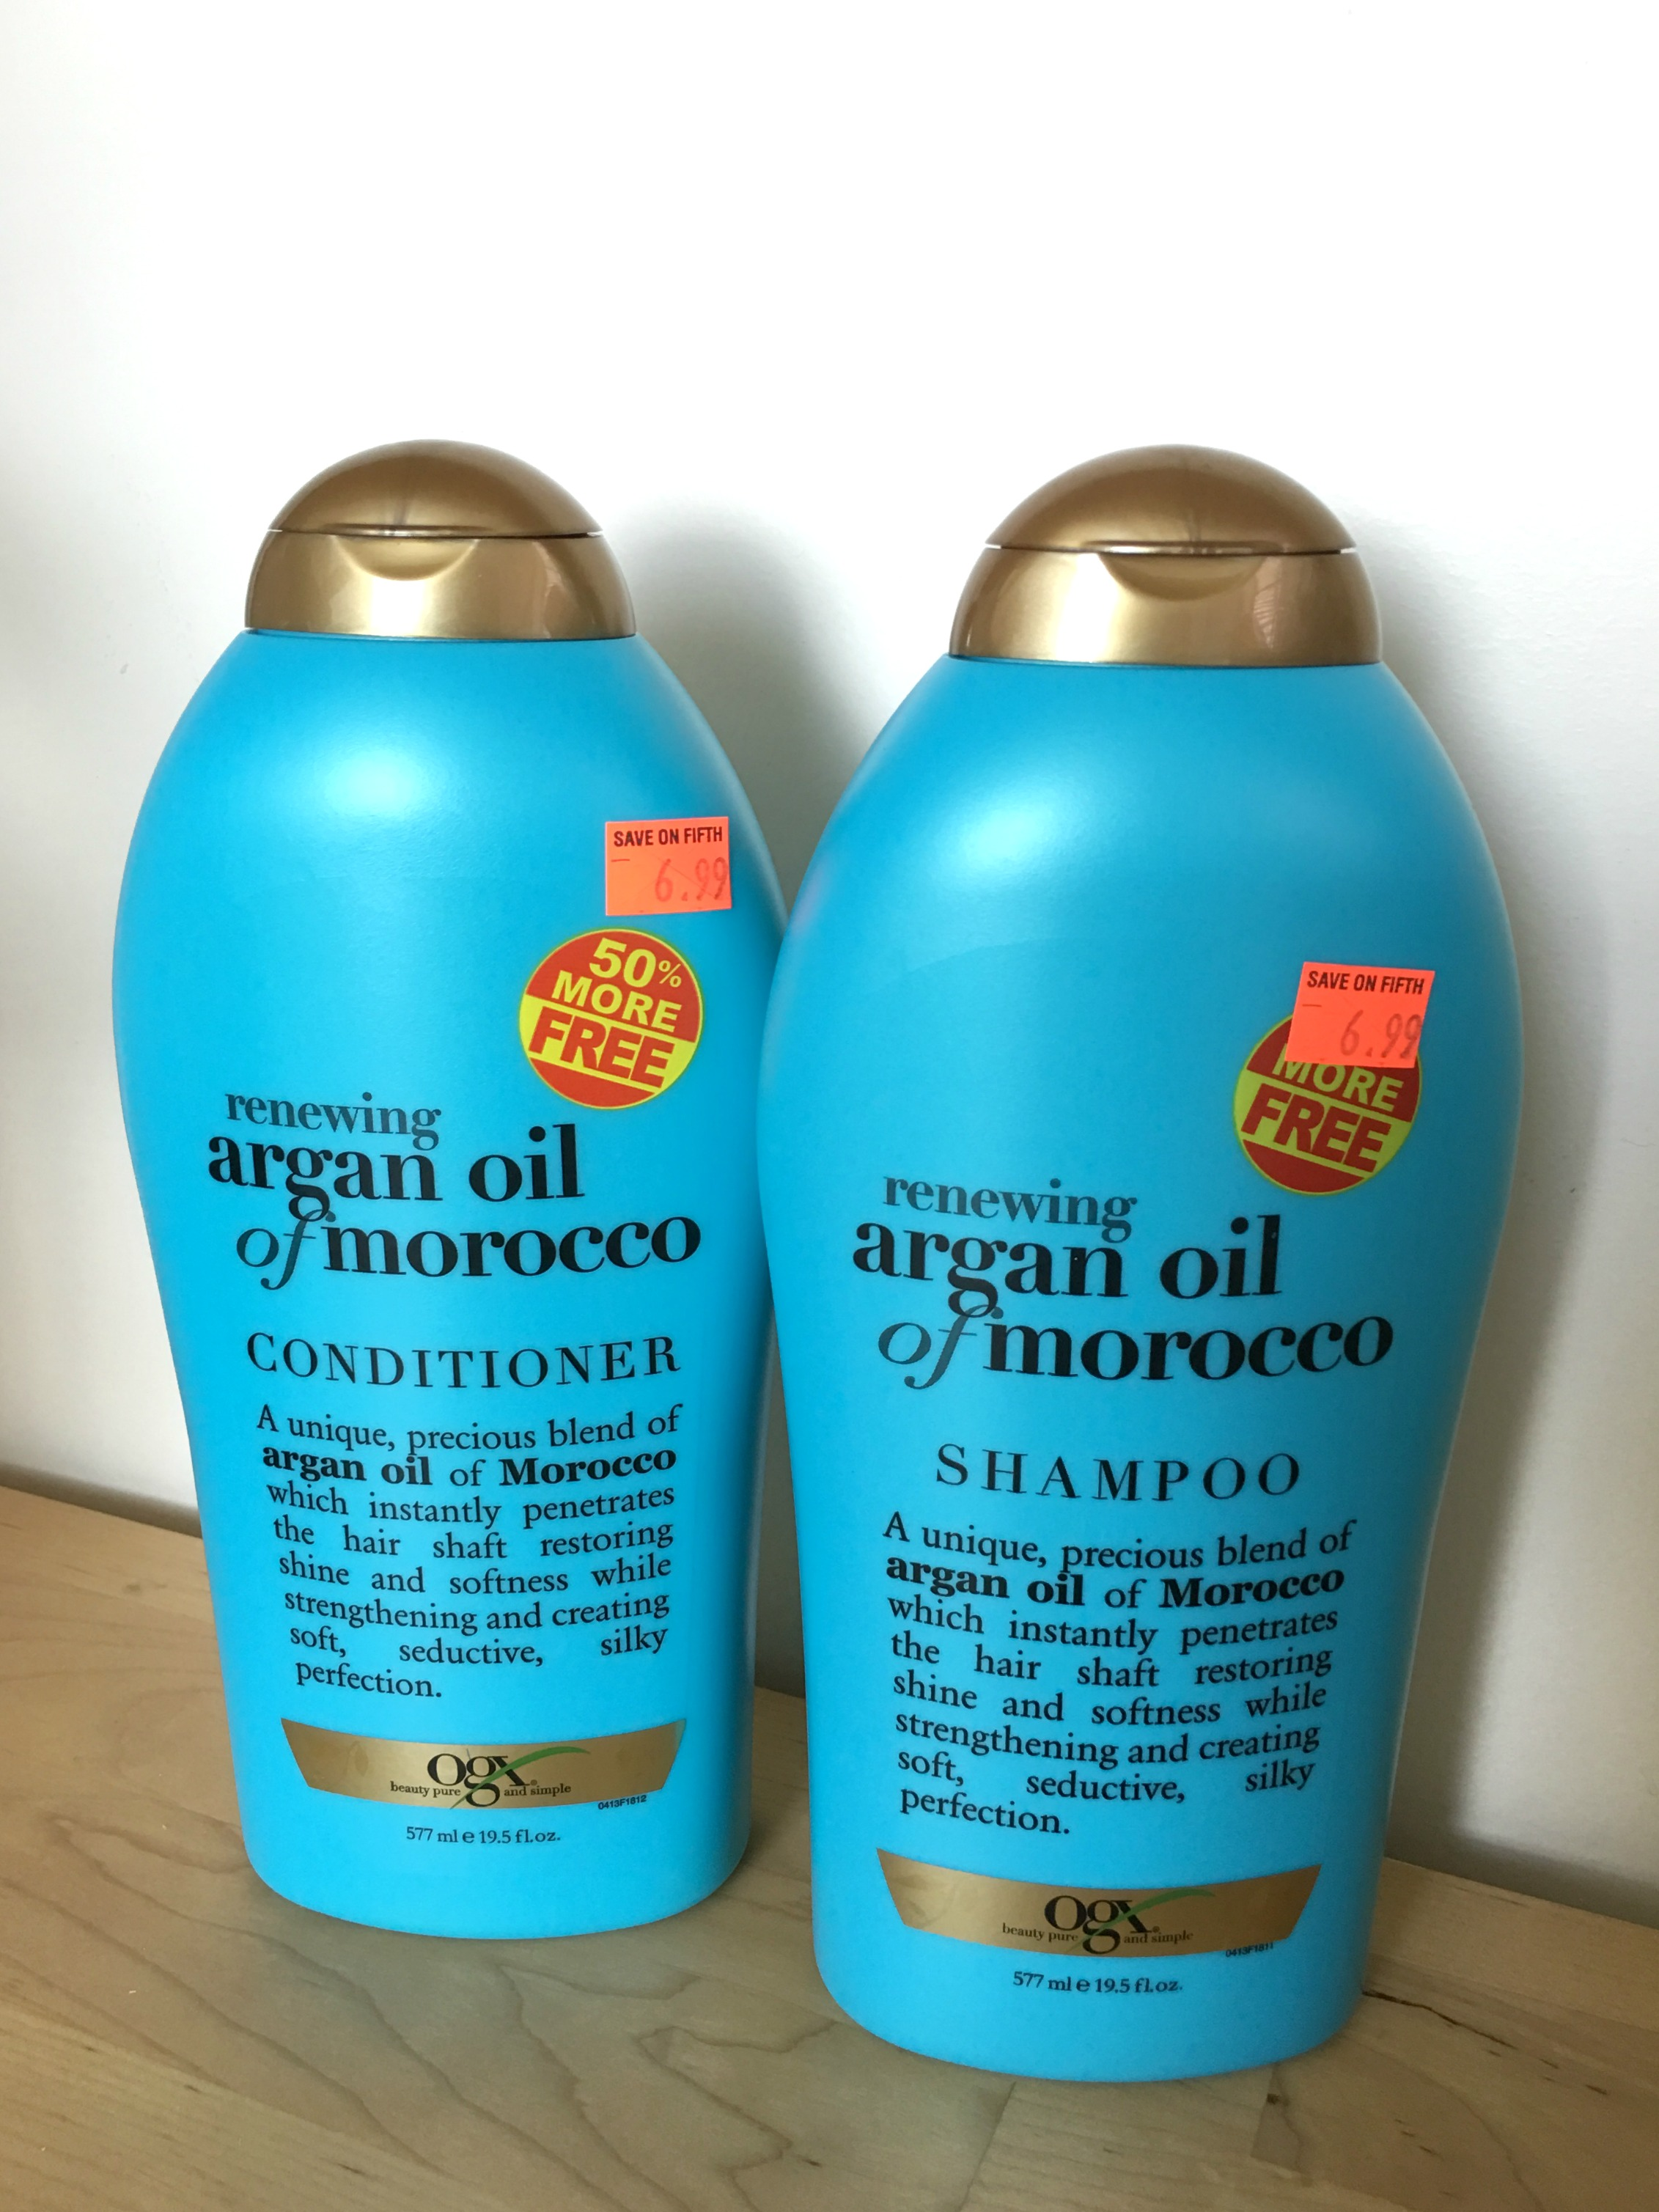 Renewing Argan Oil of Morocco shampoo and conditioner